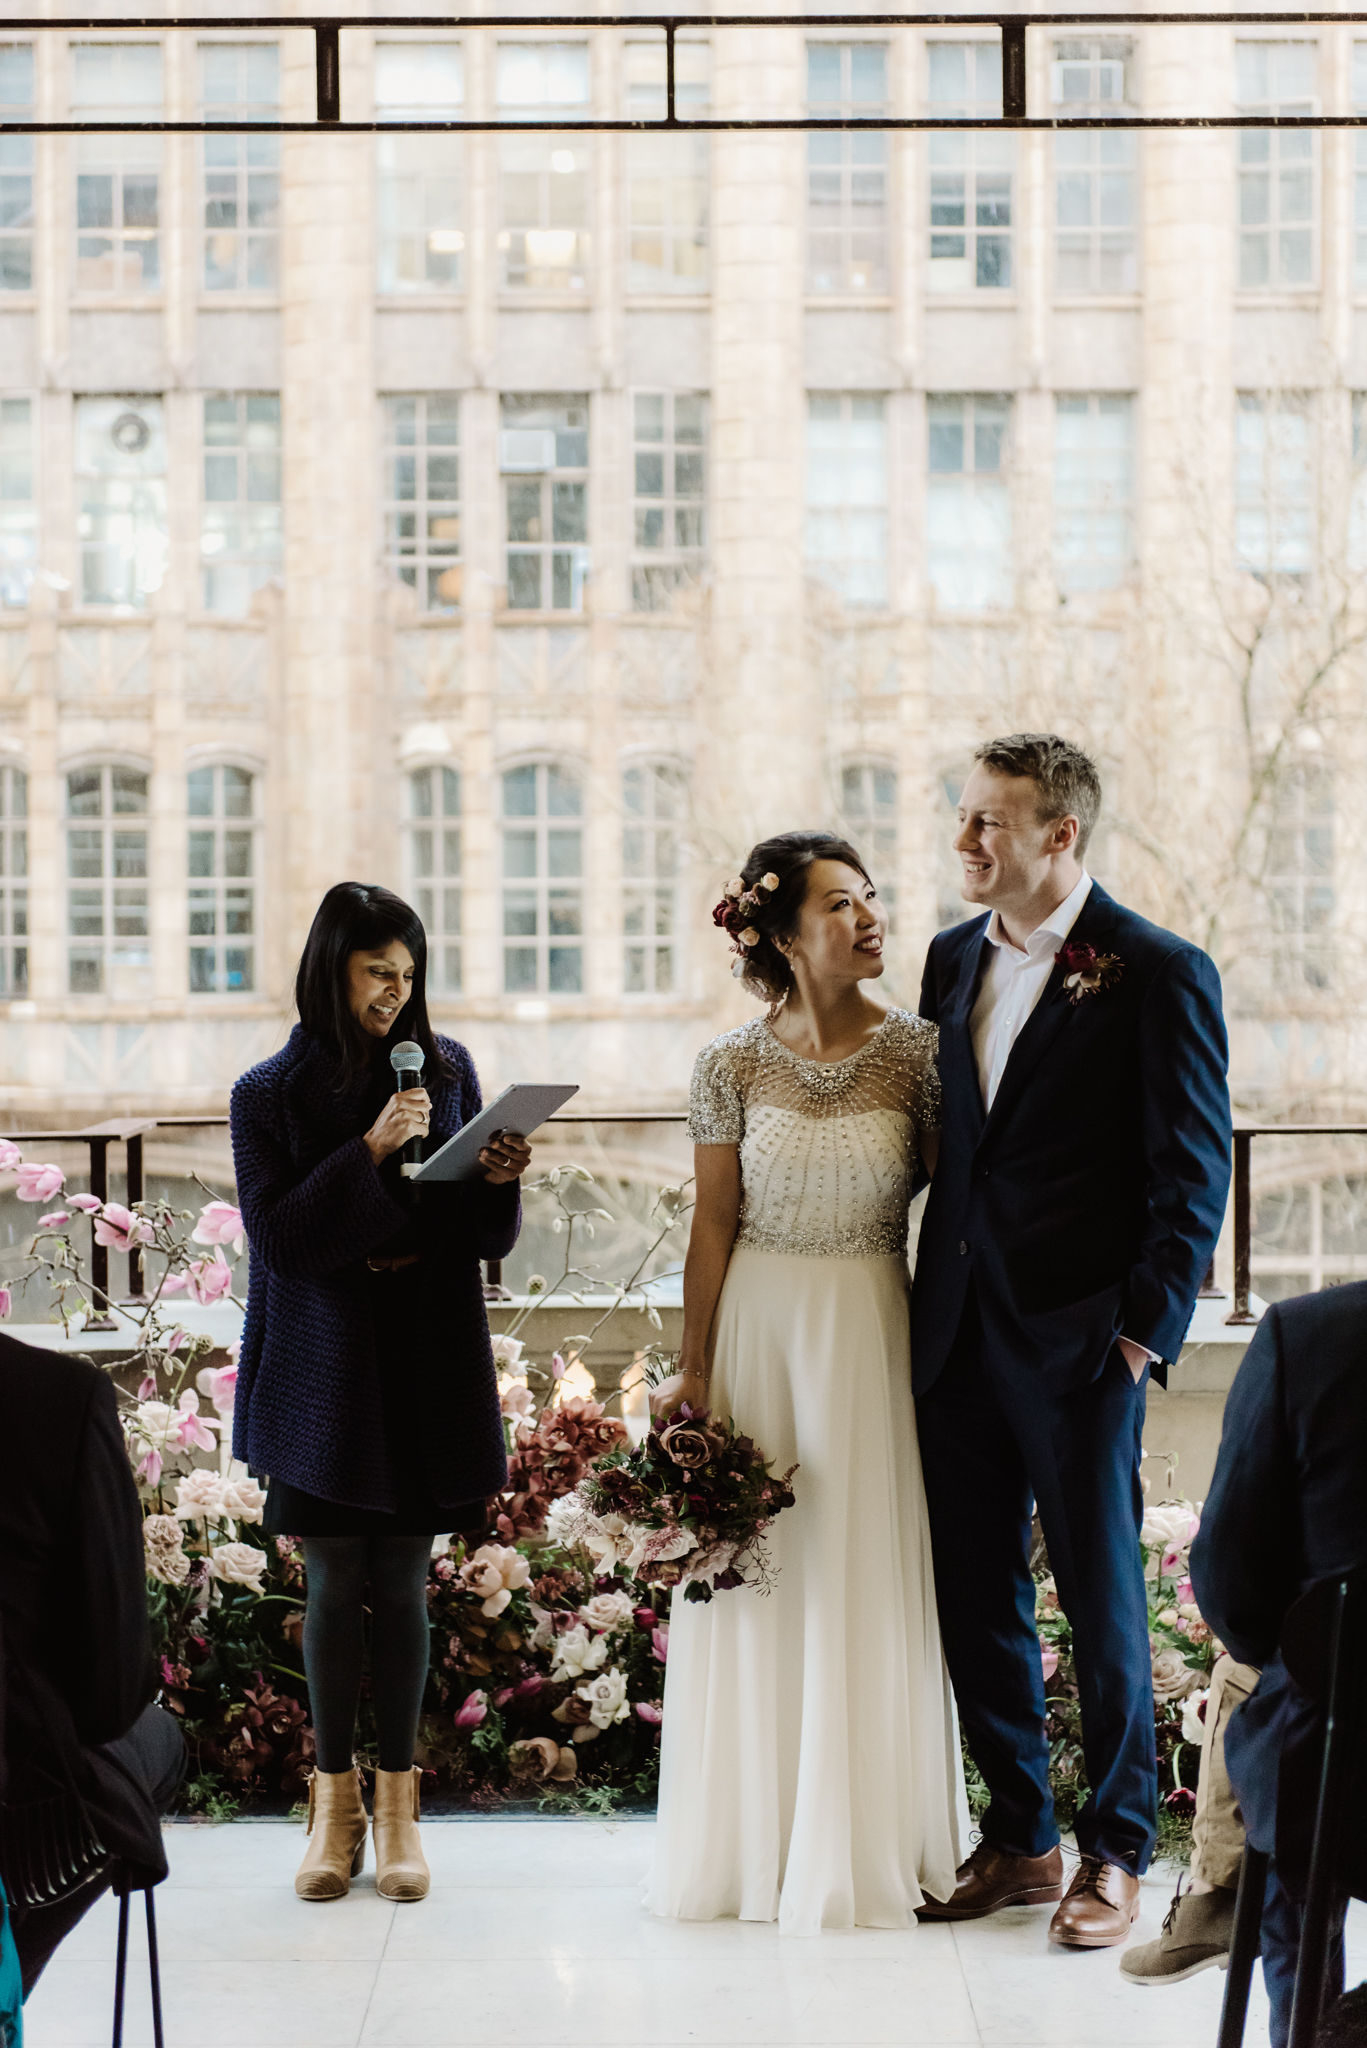 """""""Kim was simply the best celebrant we could have ever hoped for. Her energy on the day made our small ceremony filled with joy and laughter."""" - Marina + Luke / Melbourne Town Hall / Photo credit She Takes Pictures He Makes Films"""